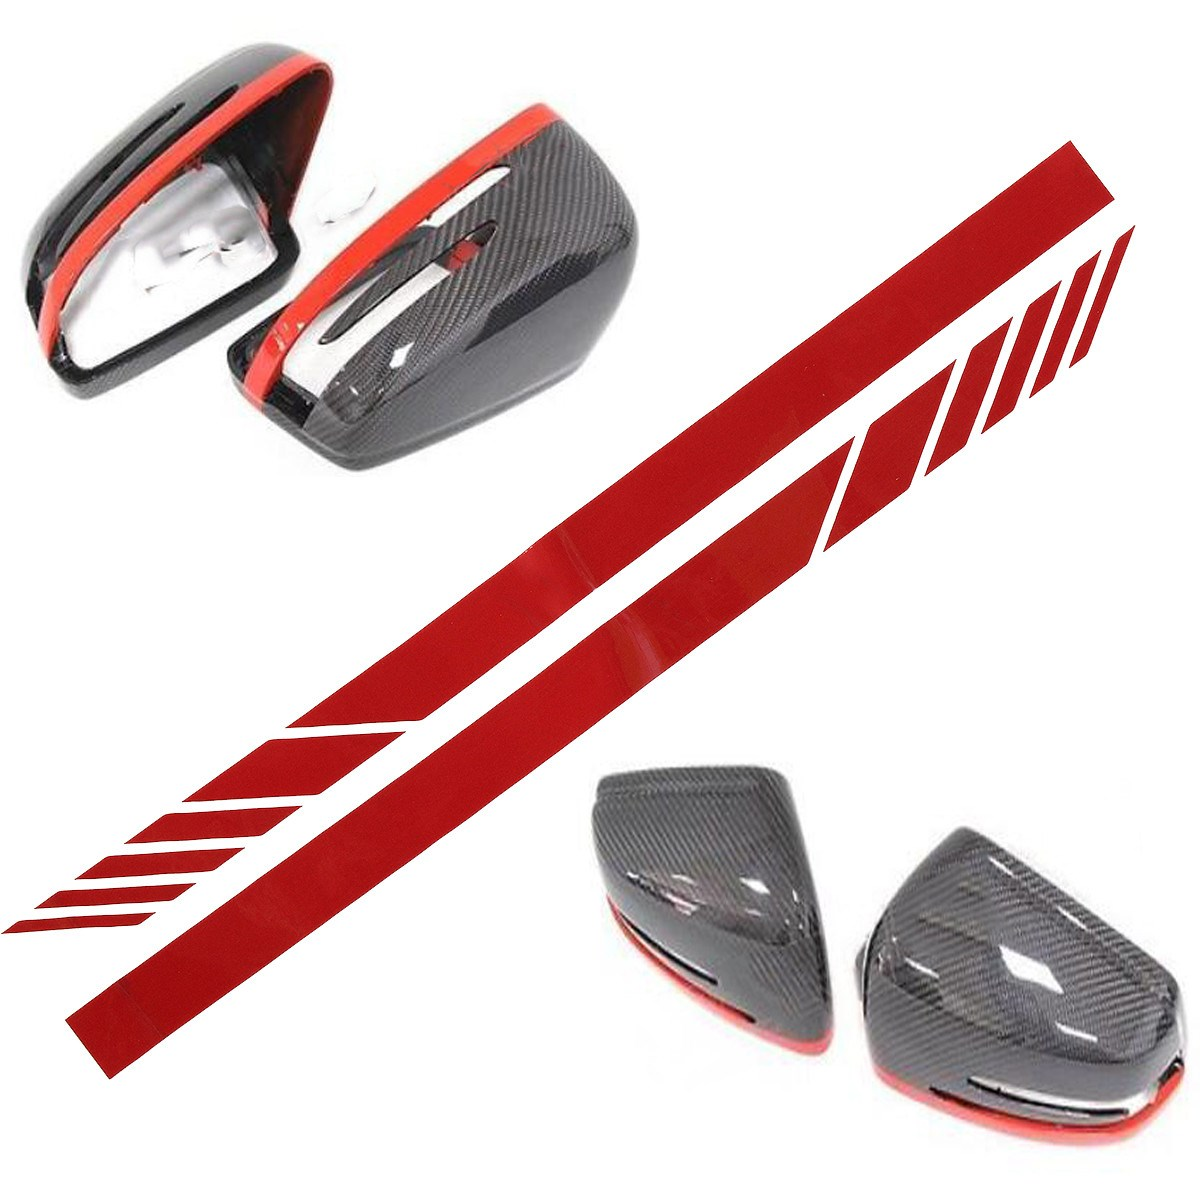 1pair Car Rear View Mirror Stripe Decal Sticker Vinyl For Benz W204 W212 W117 W176 Edition 1 For AMG